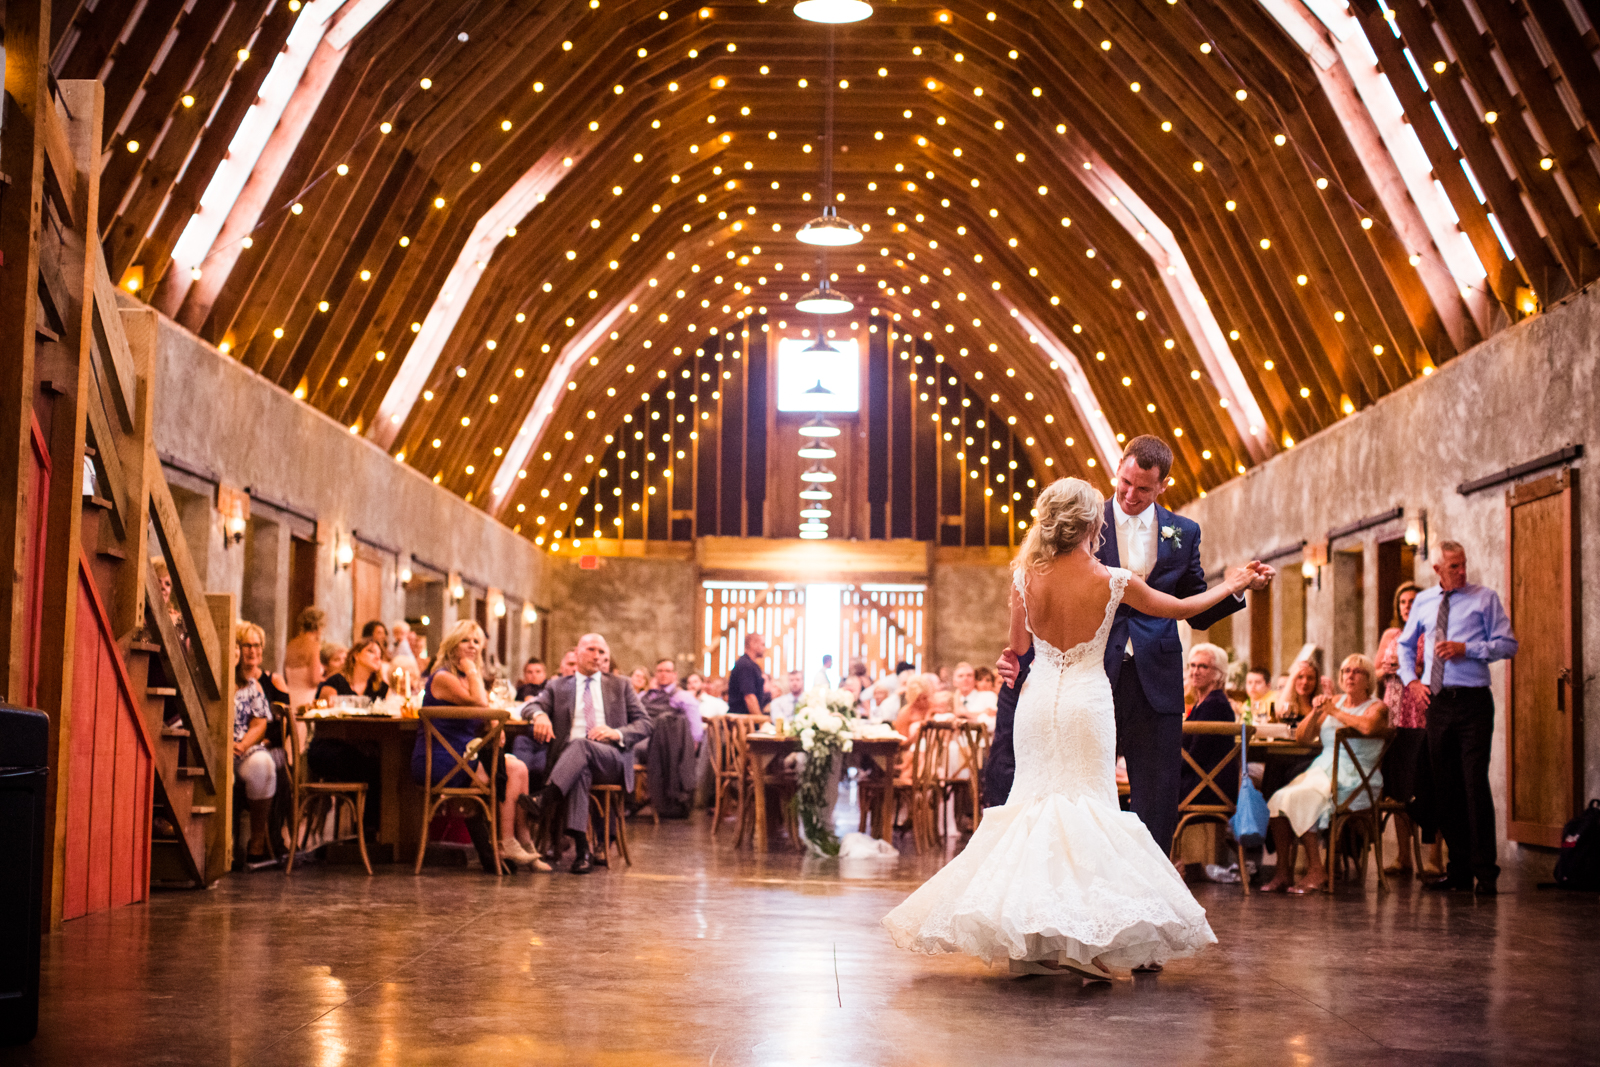 Poetry-&-Motion-High-Country-Wedding-Photography-Overlook-Barn (26 of 35).jpg